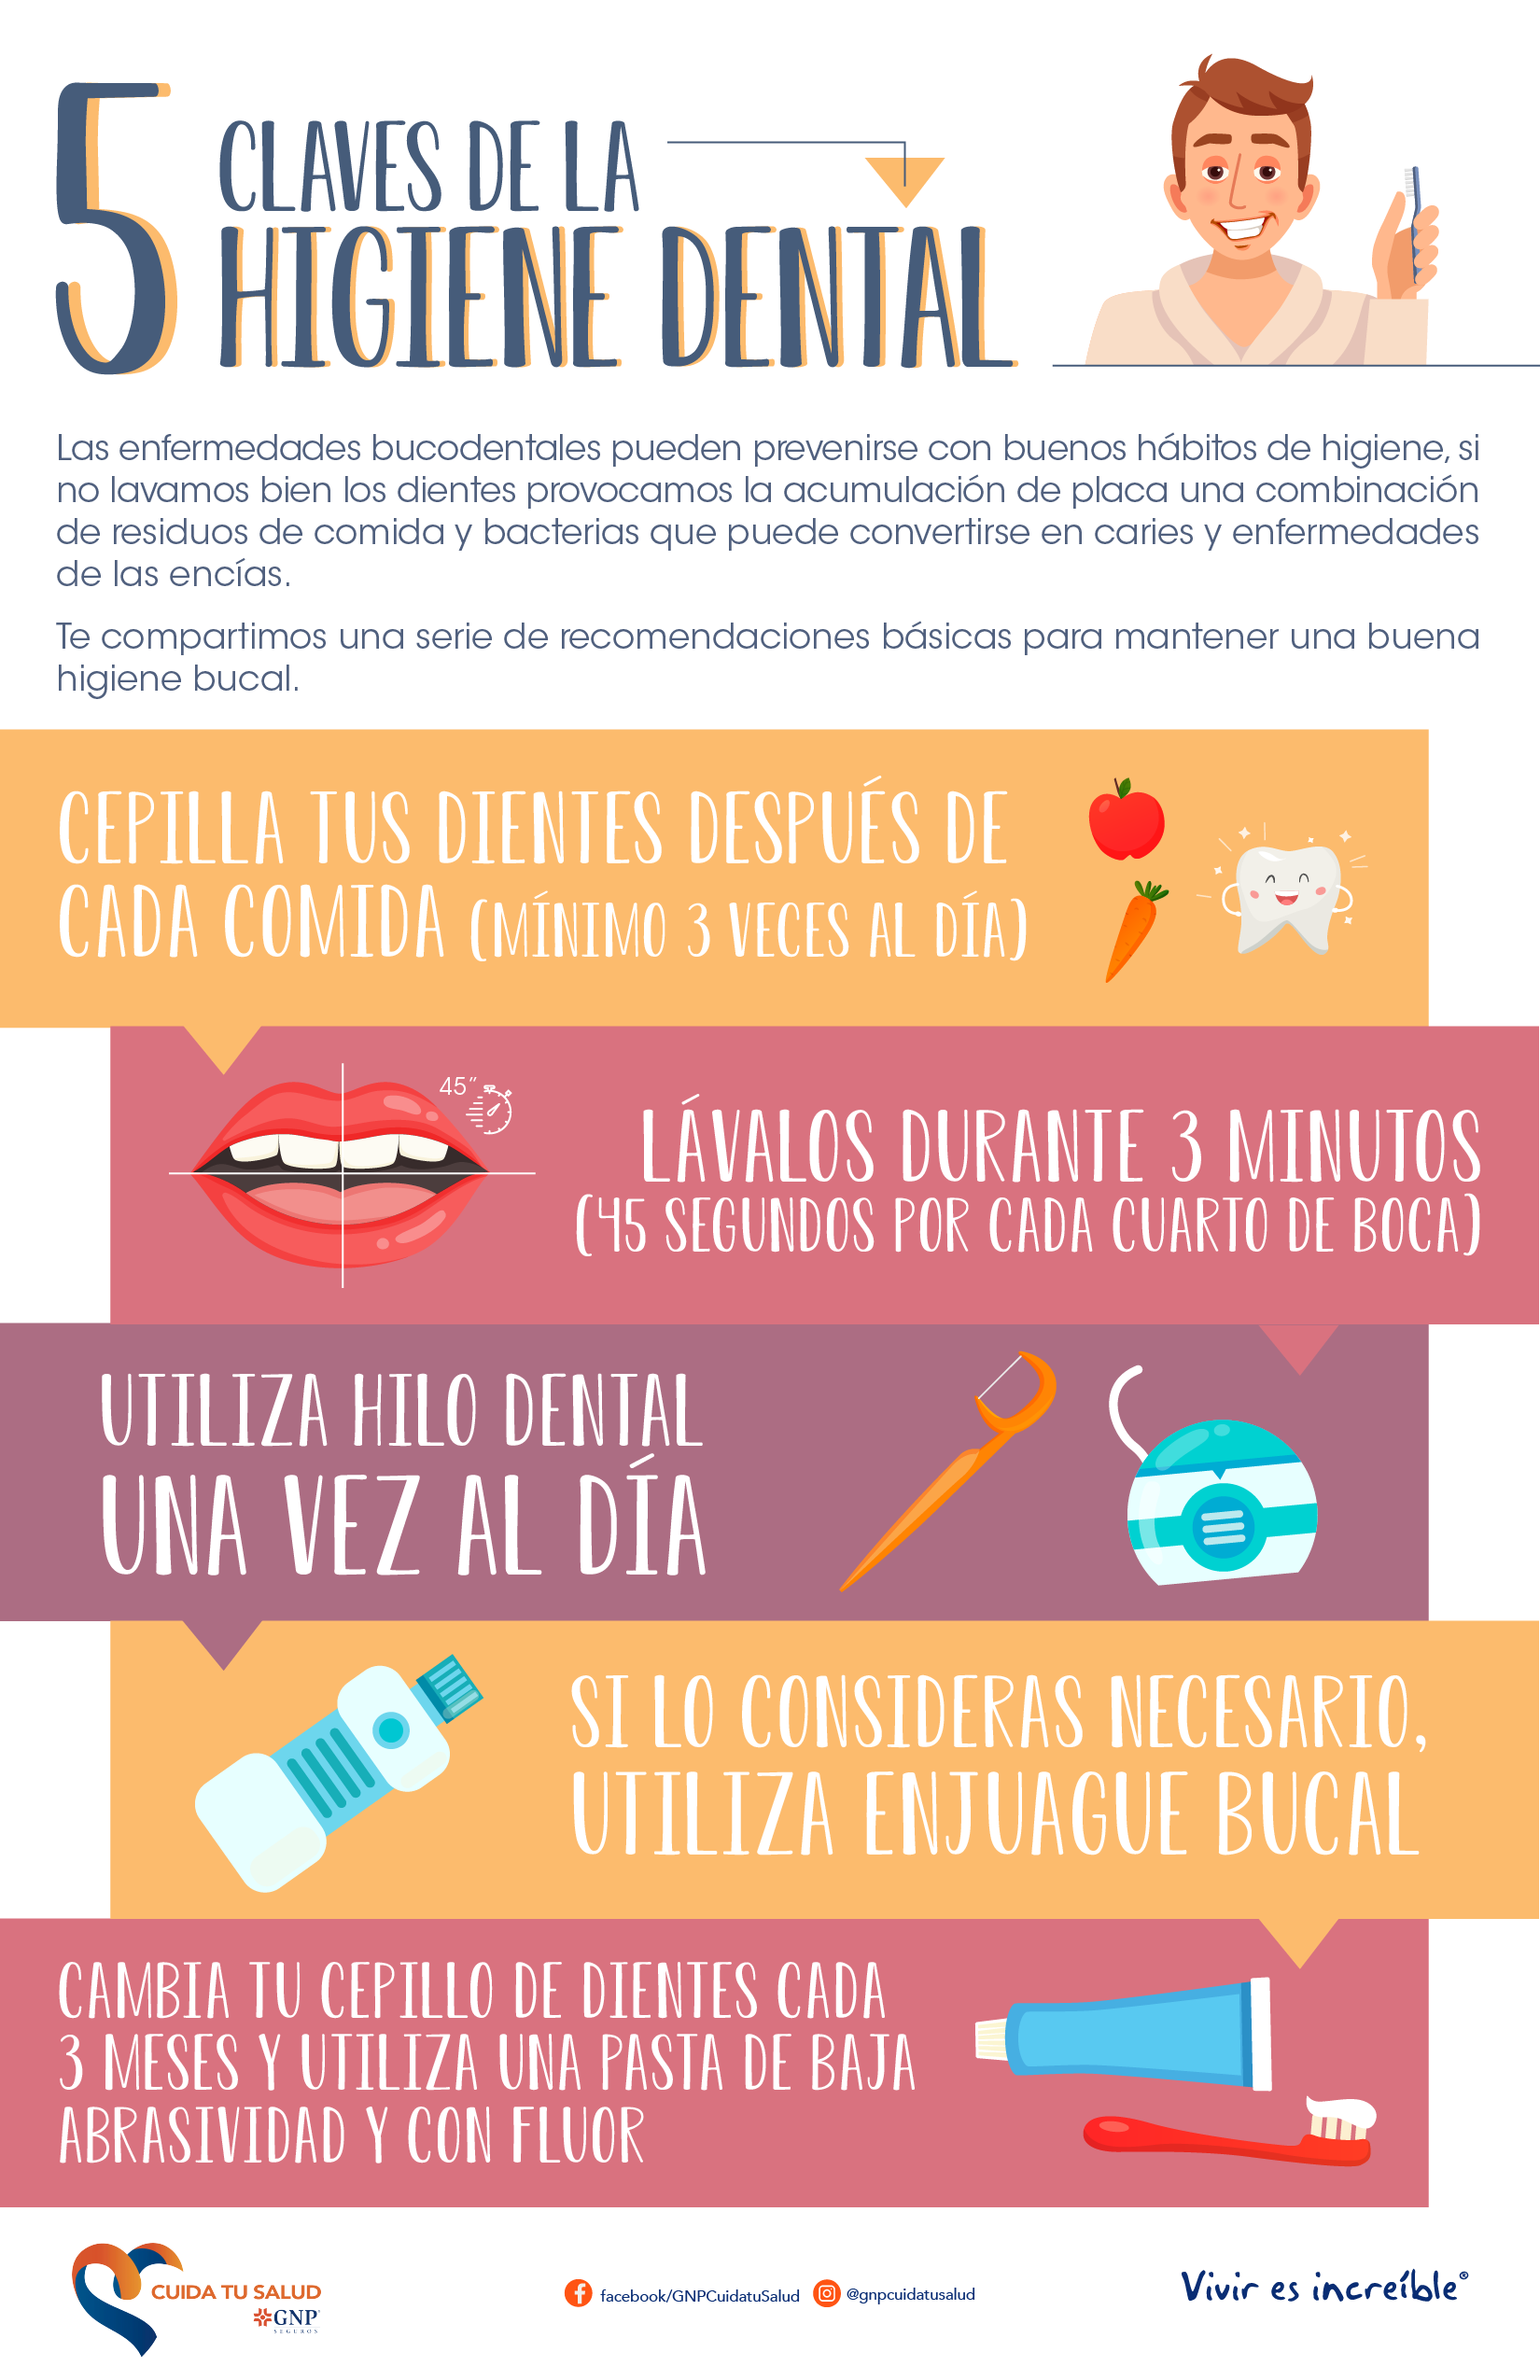 5 Claves de la higiene dental